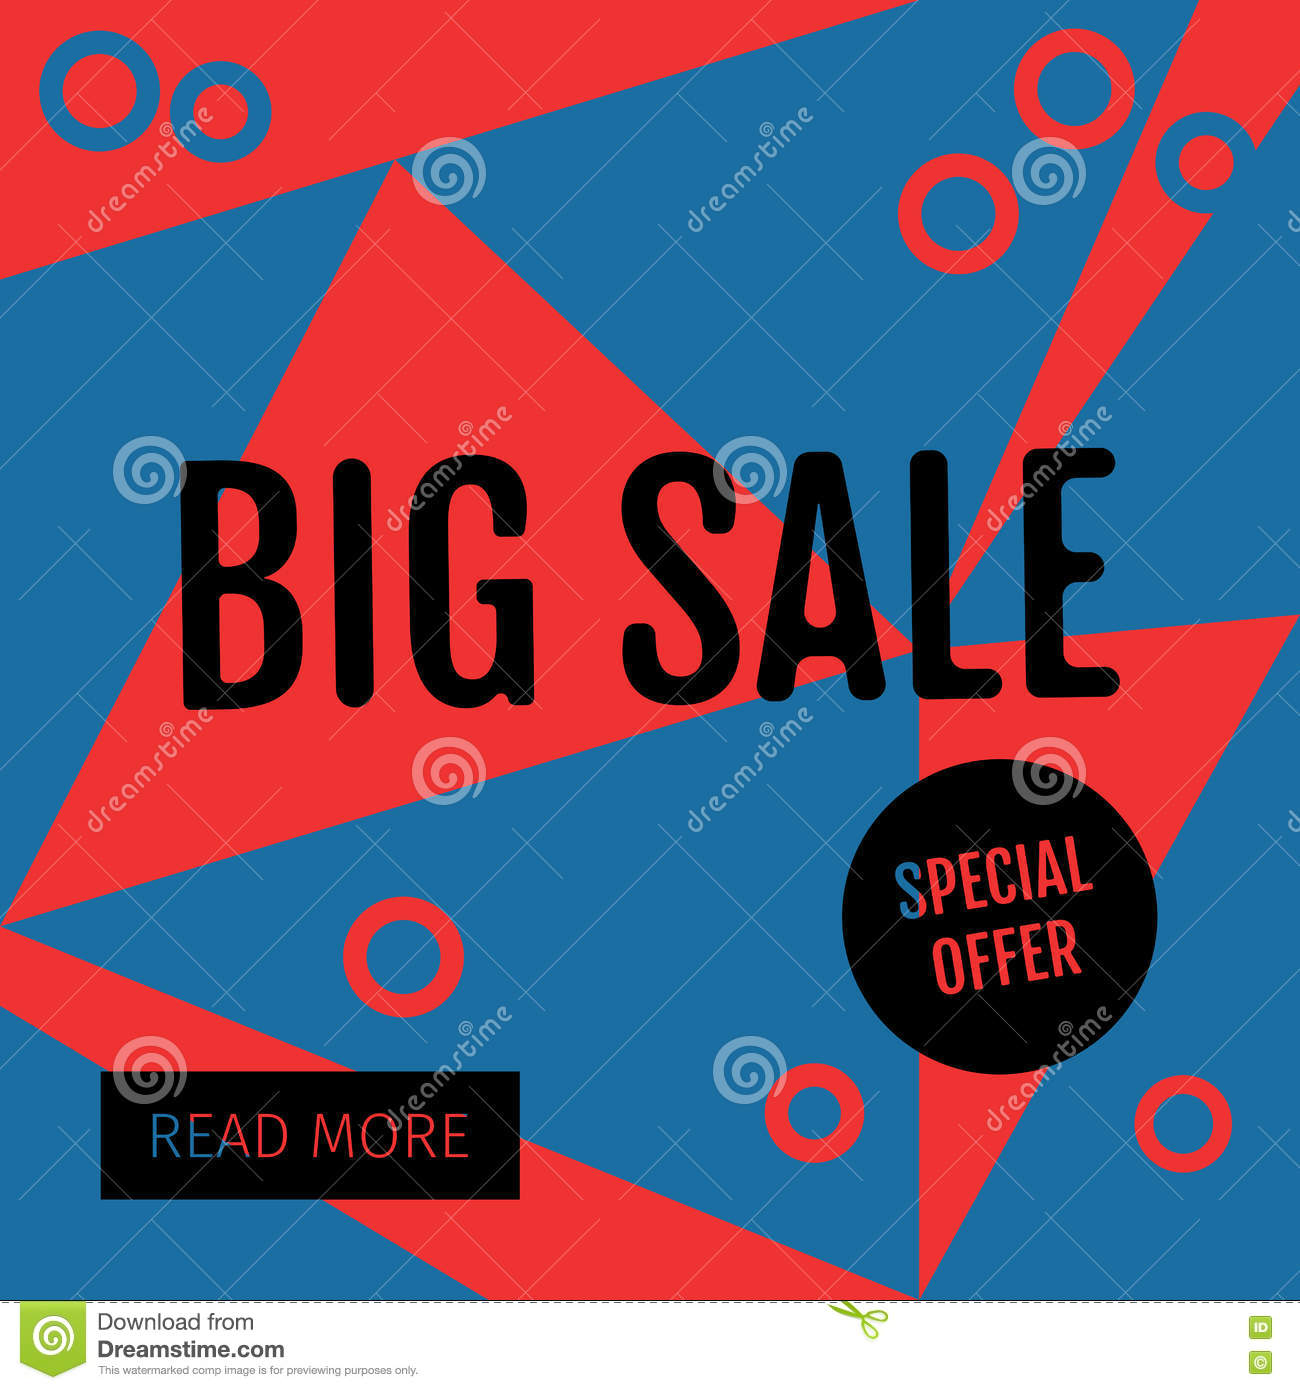 Sale Templates With Discount Offer Stock Vector Illustration Of